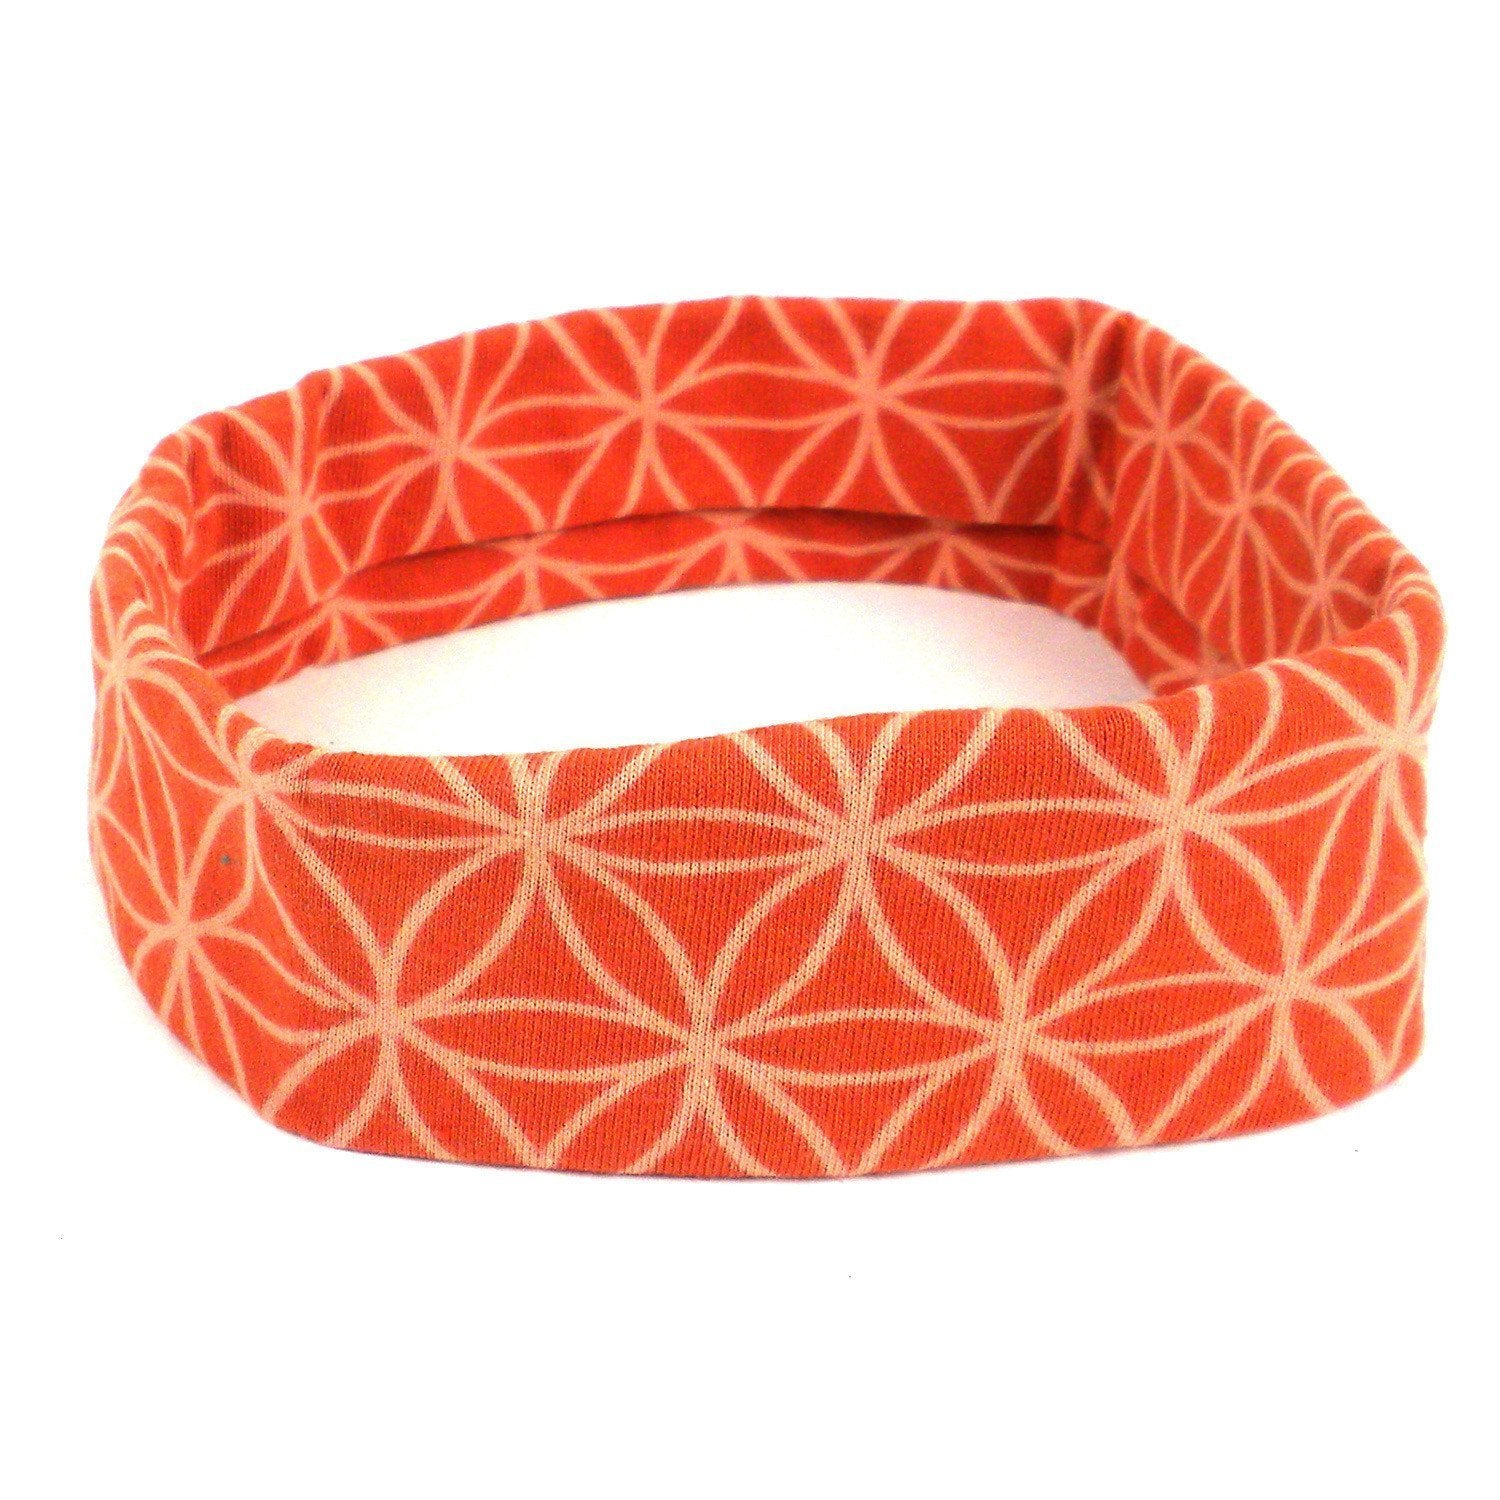 Flower of Life Headband - Orange